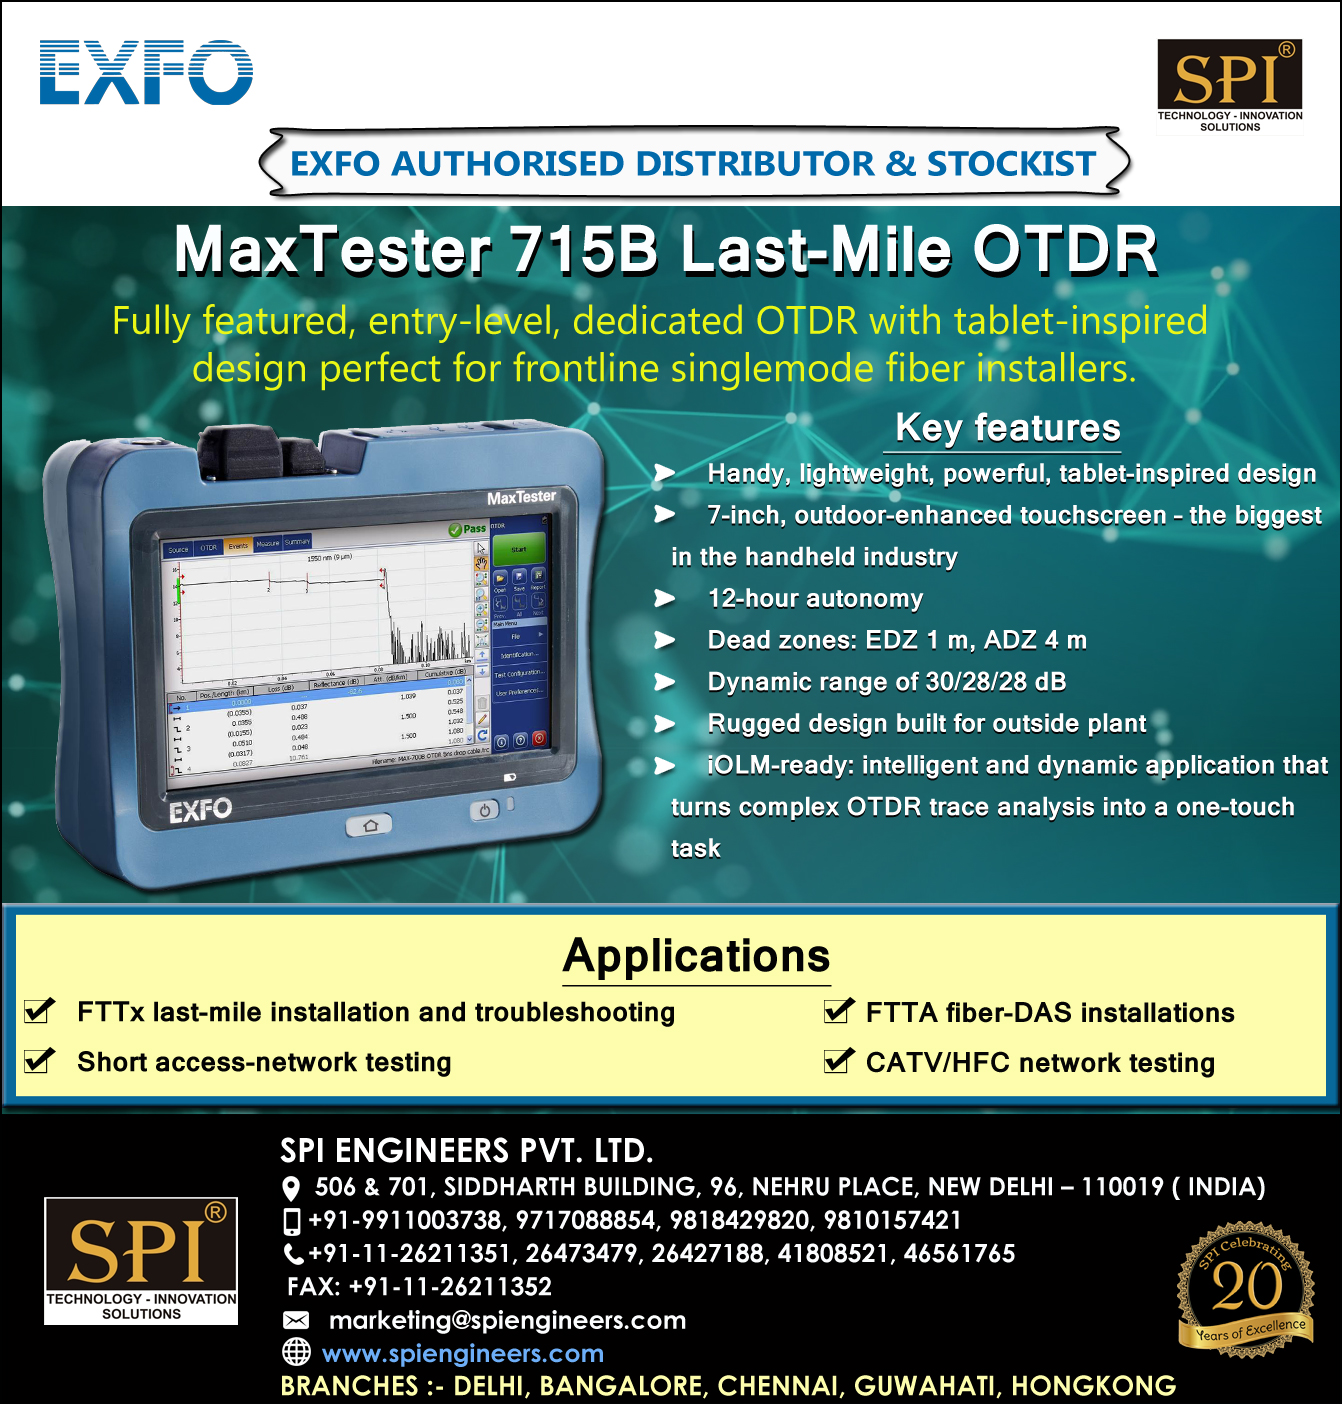 EXFO Max 715b Dealers in India at SPI Engineers